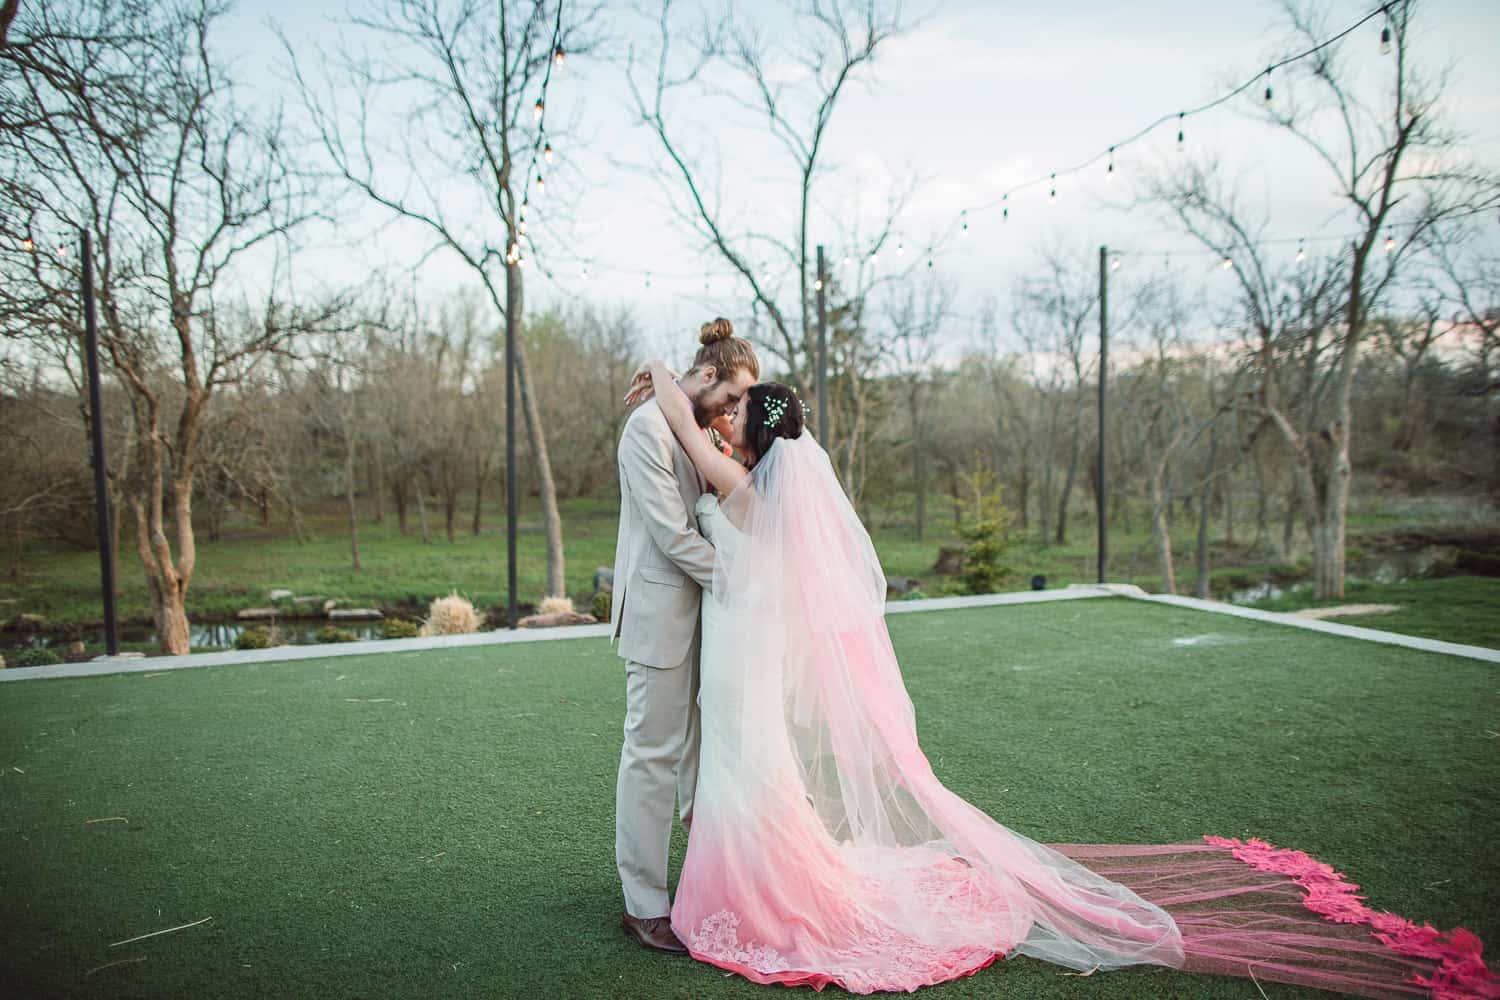 First dance at the Bowery wedding venue in Spring Hill Kansas